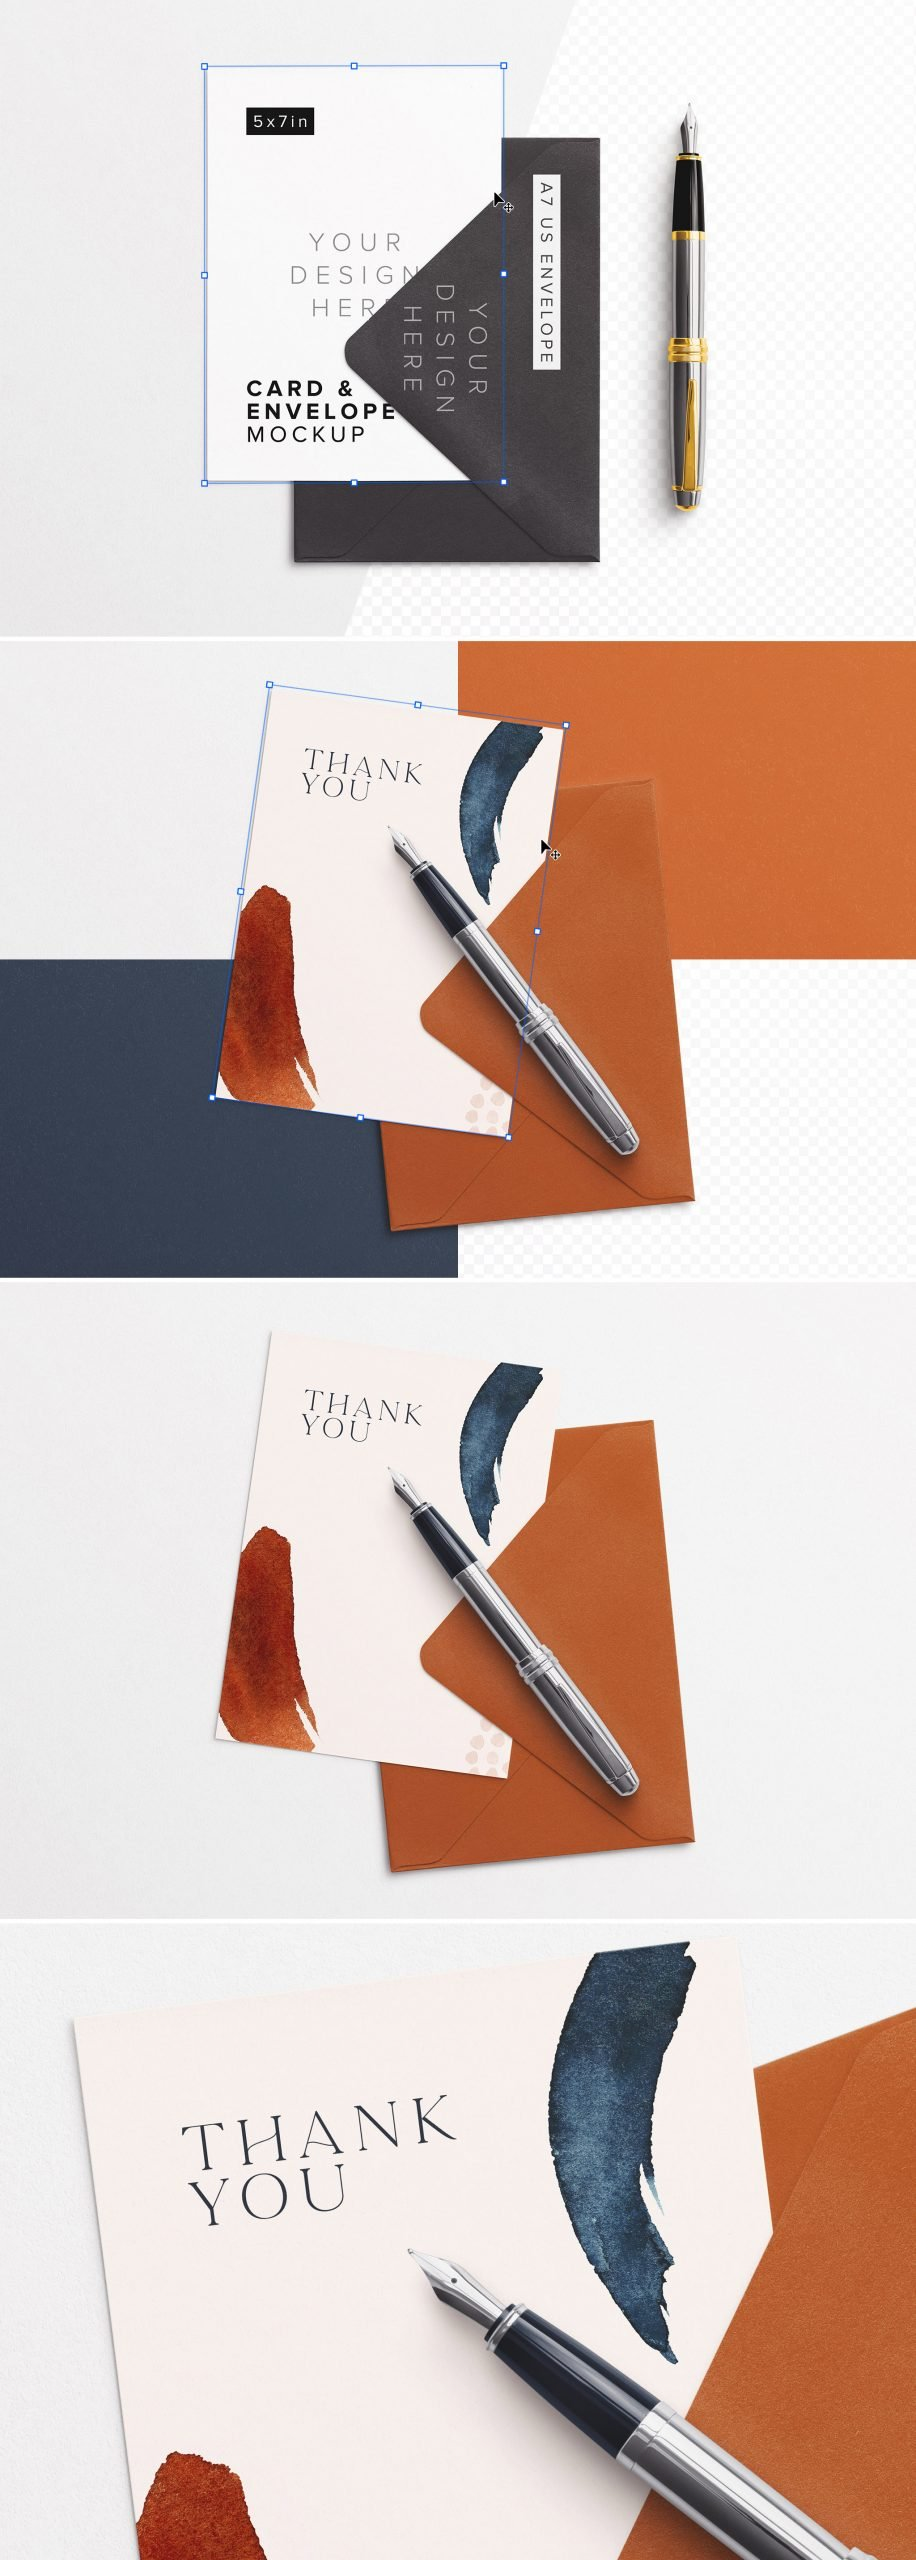 5x7in Card with Envelope And Foutain Pen Mockup Preview scaled